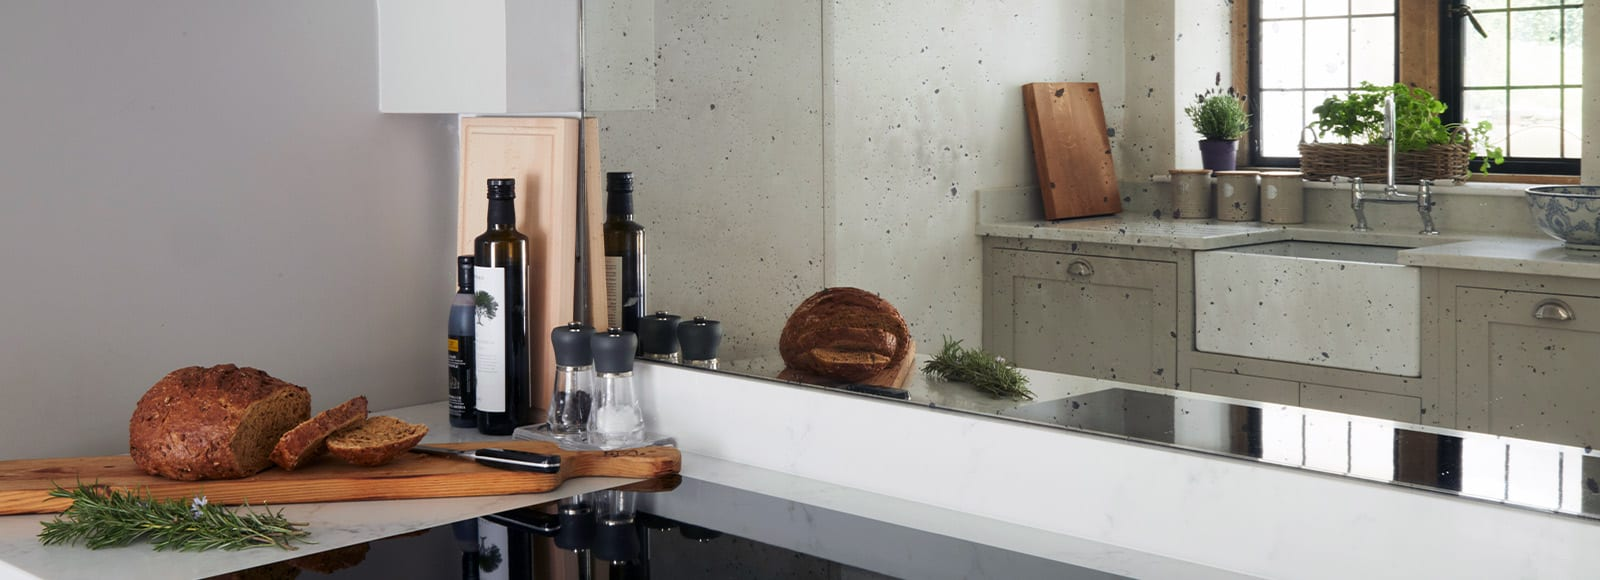 Green shaker kitchen reflection in a mirrored splashback with bread on side.